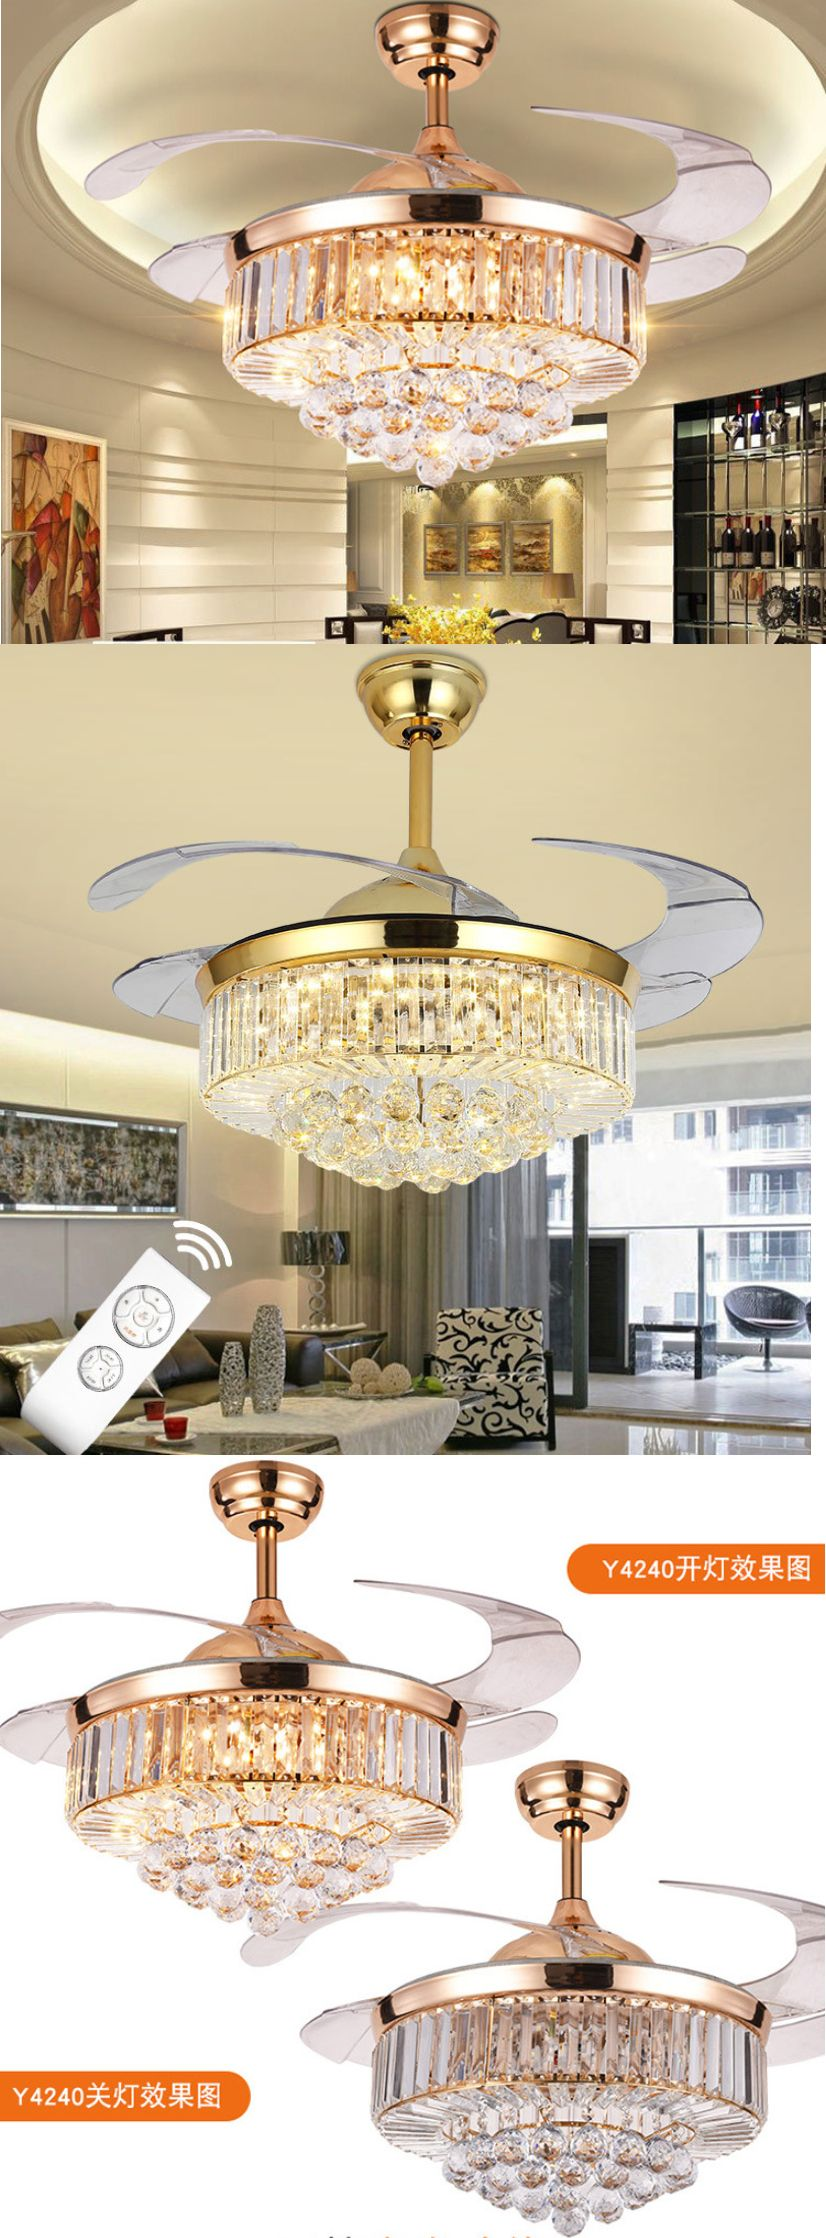 Luxury Ceiling Fan Ceiling Fans 176937 Rose Gold Led Crystal Ceiling Invisible Fan